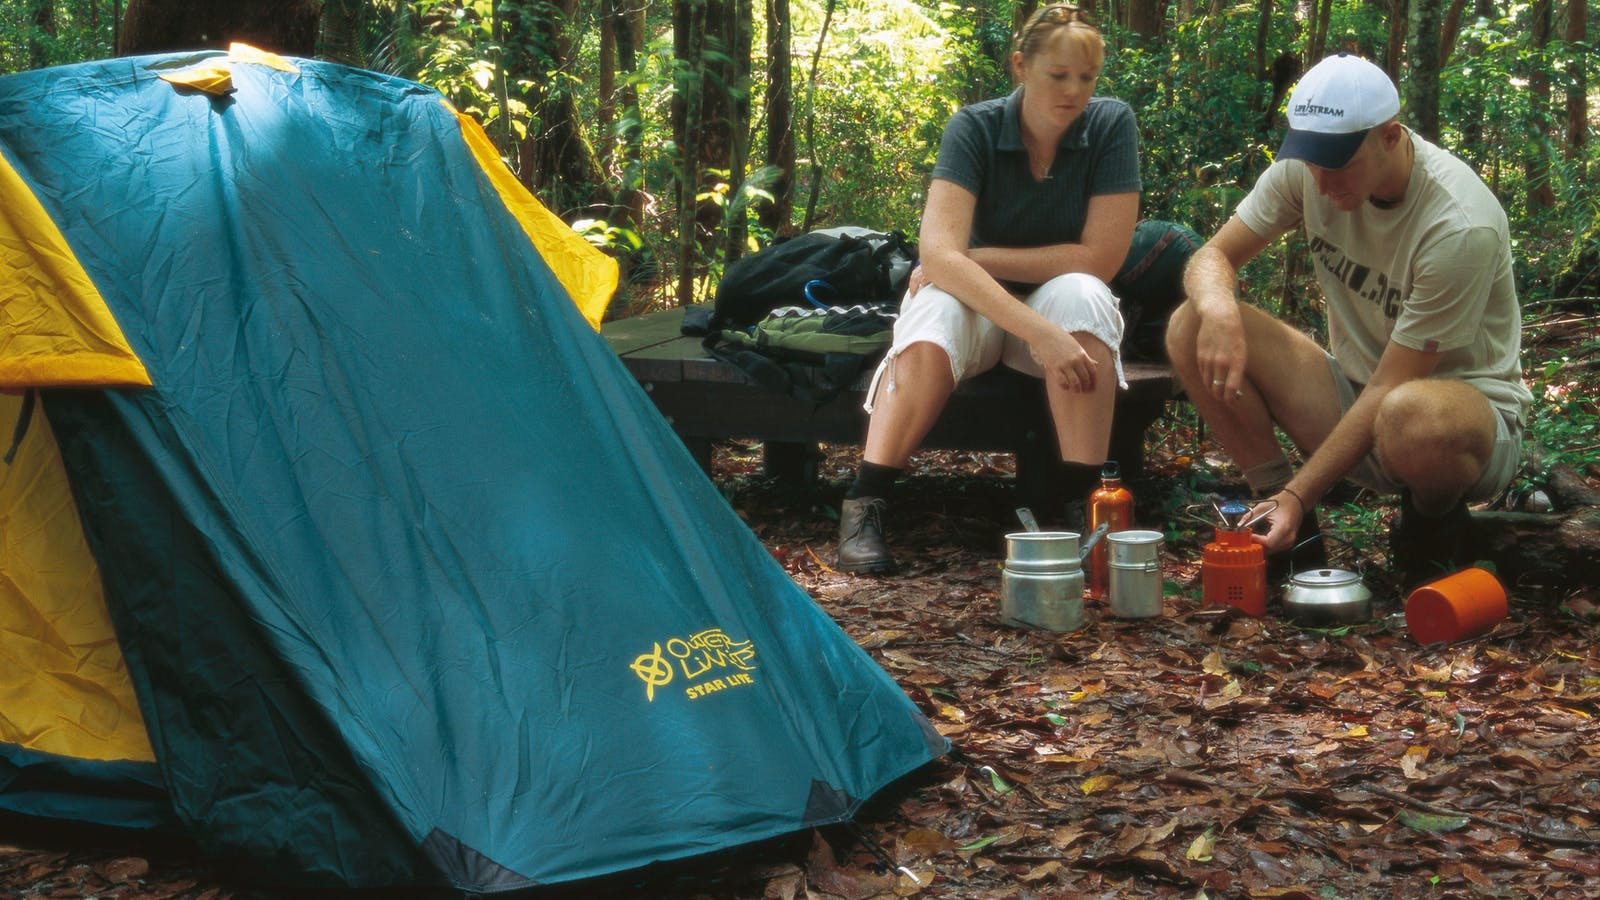 Tent and campers in forest, Fraser Island